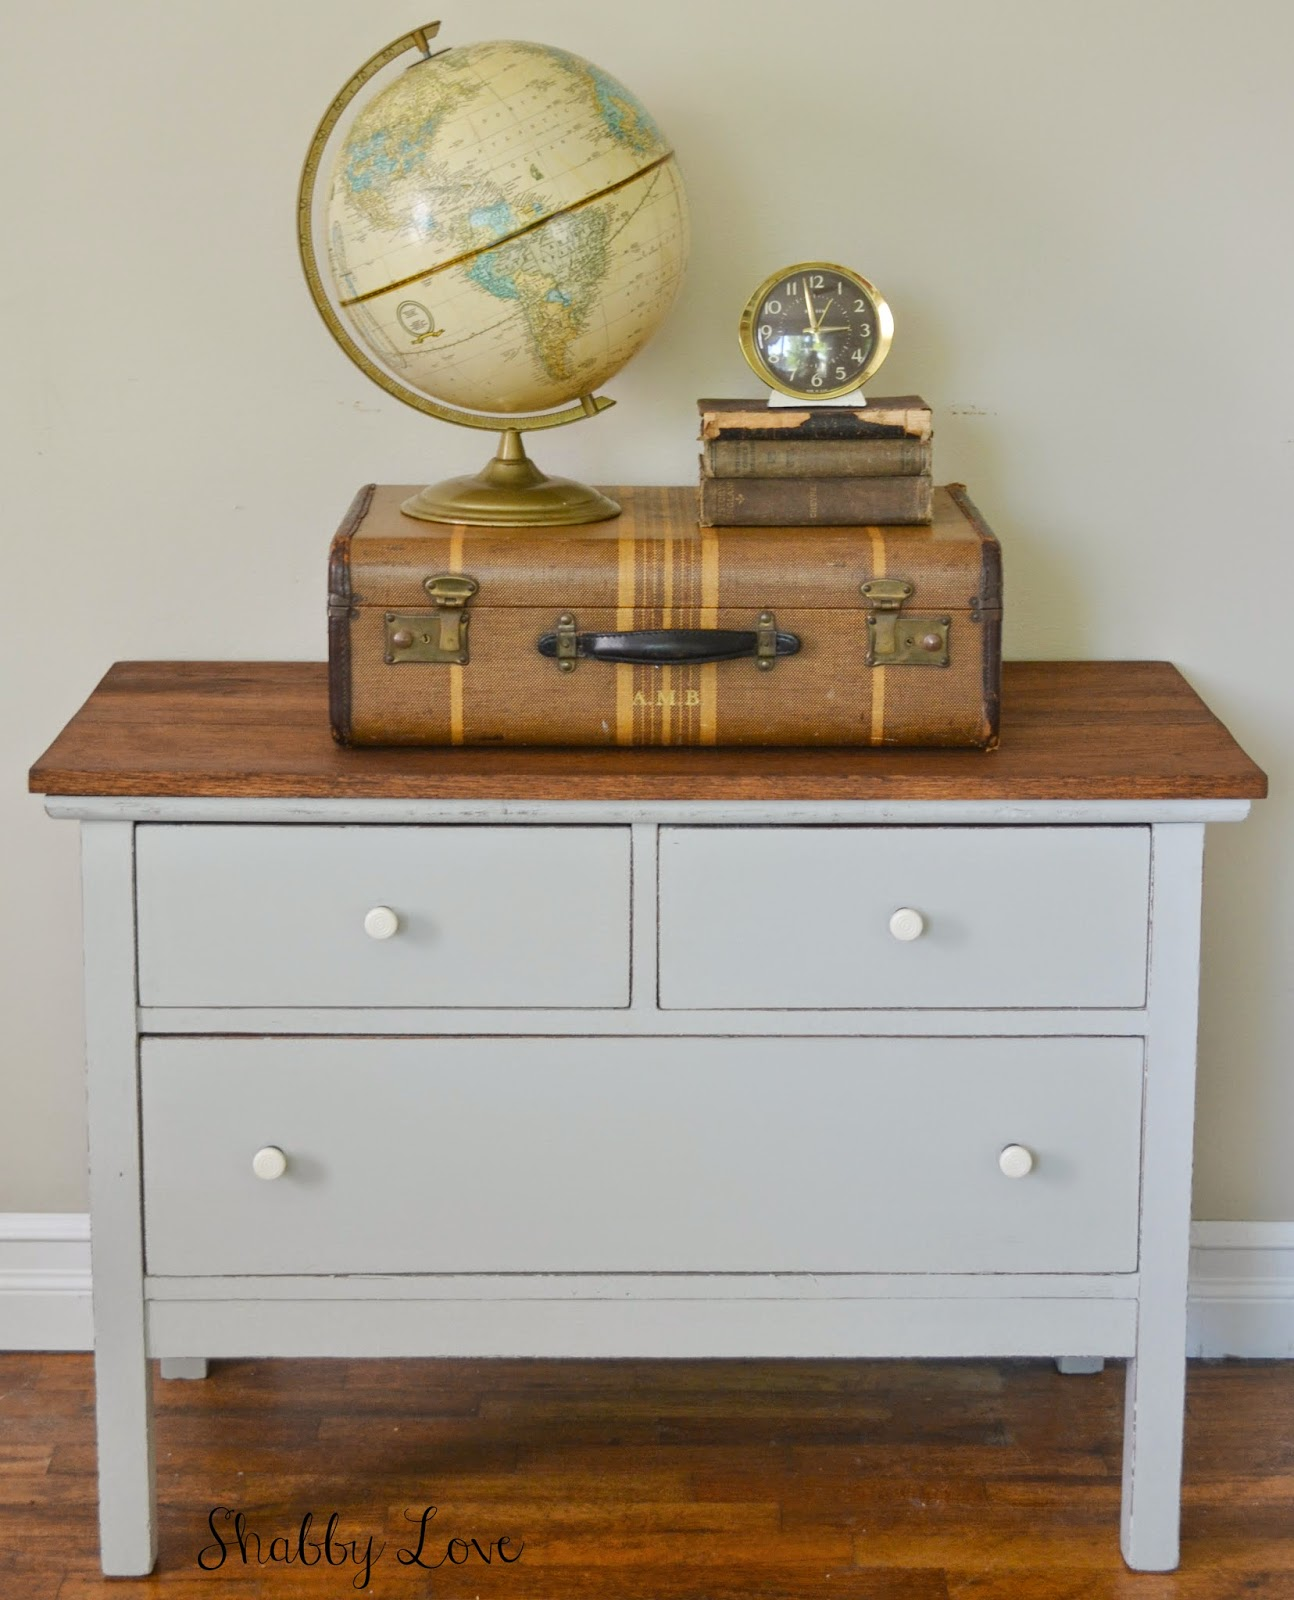 Shabby Love: The Best Thrift Store Furniture Find Ever